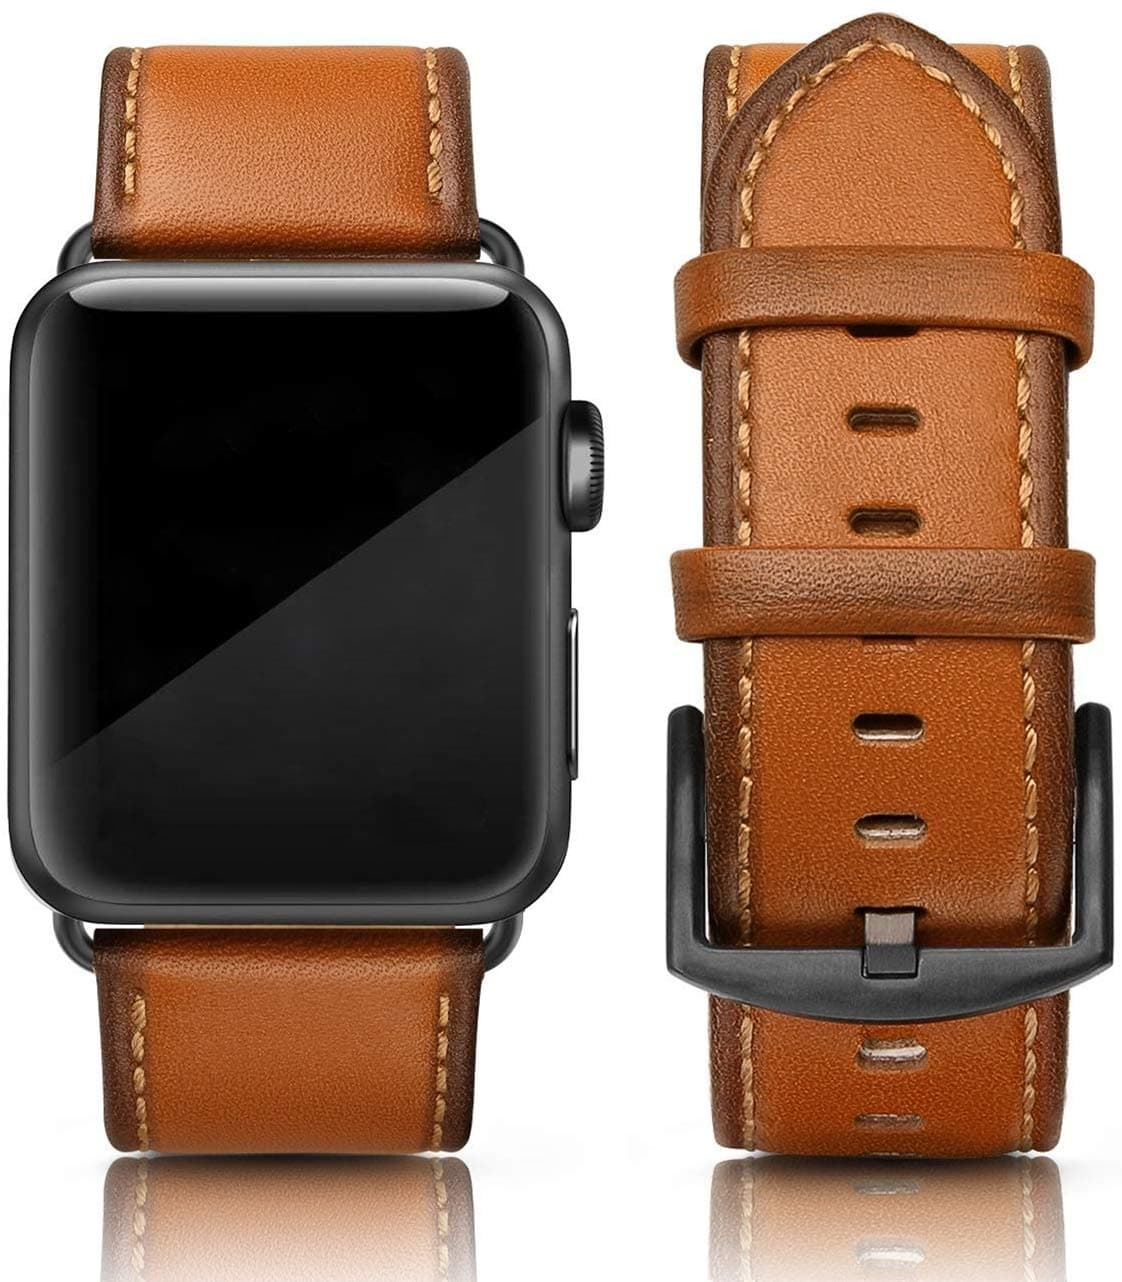 photo of an apple watch with brown leather strap